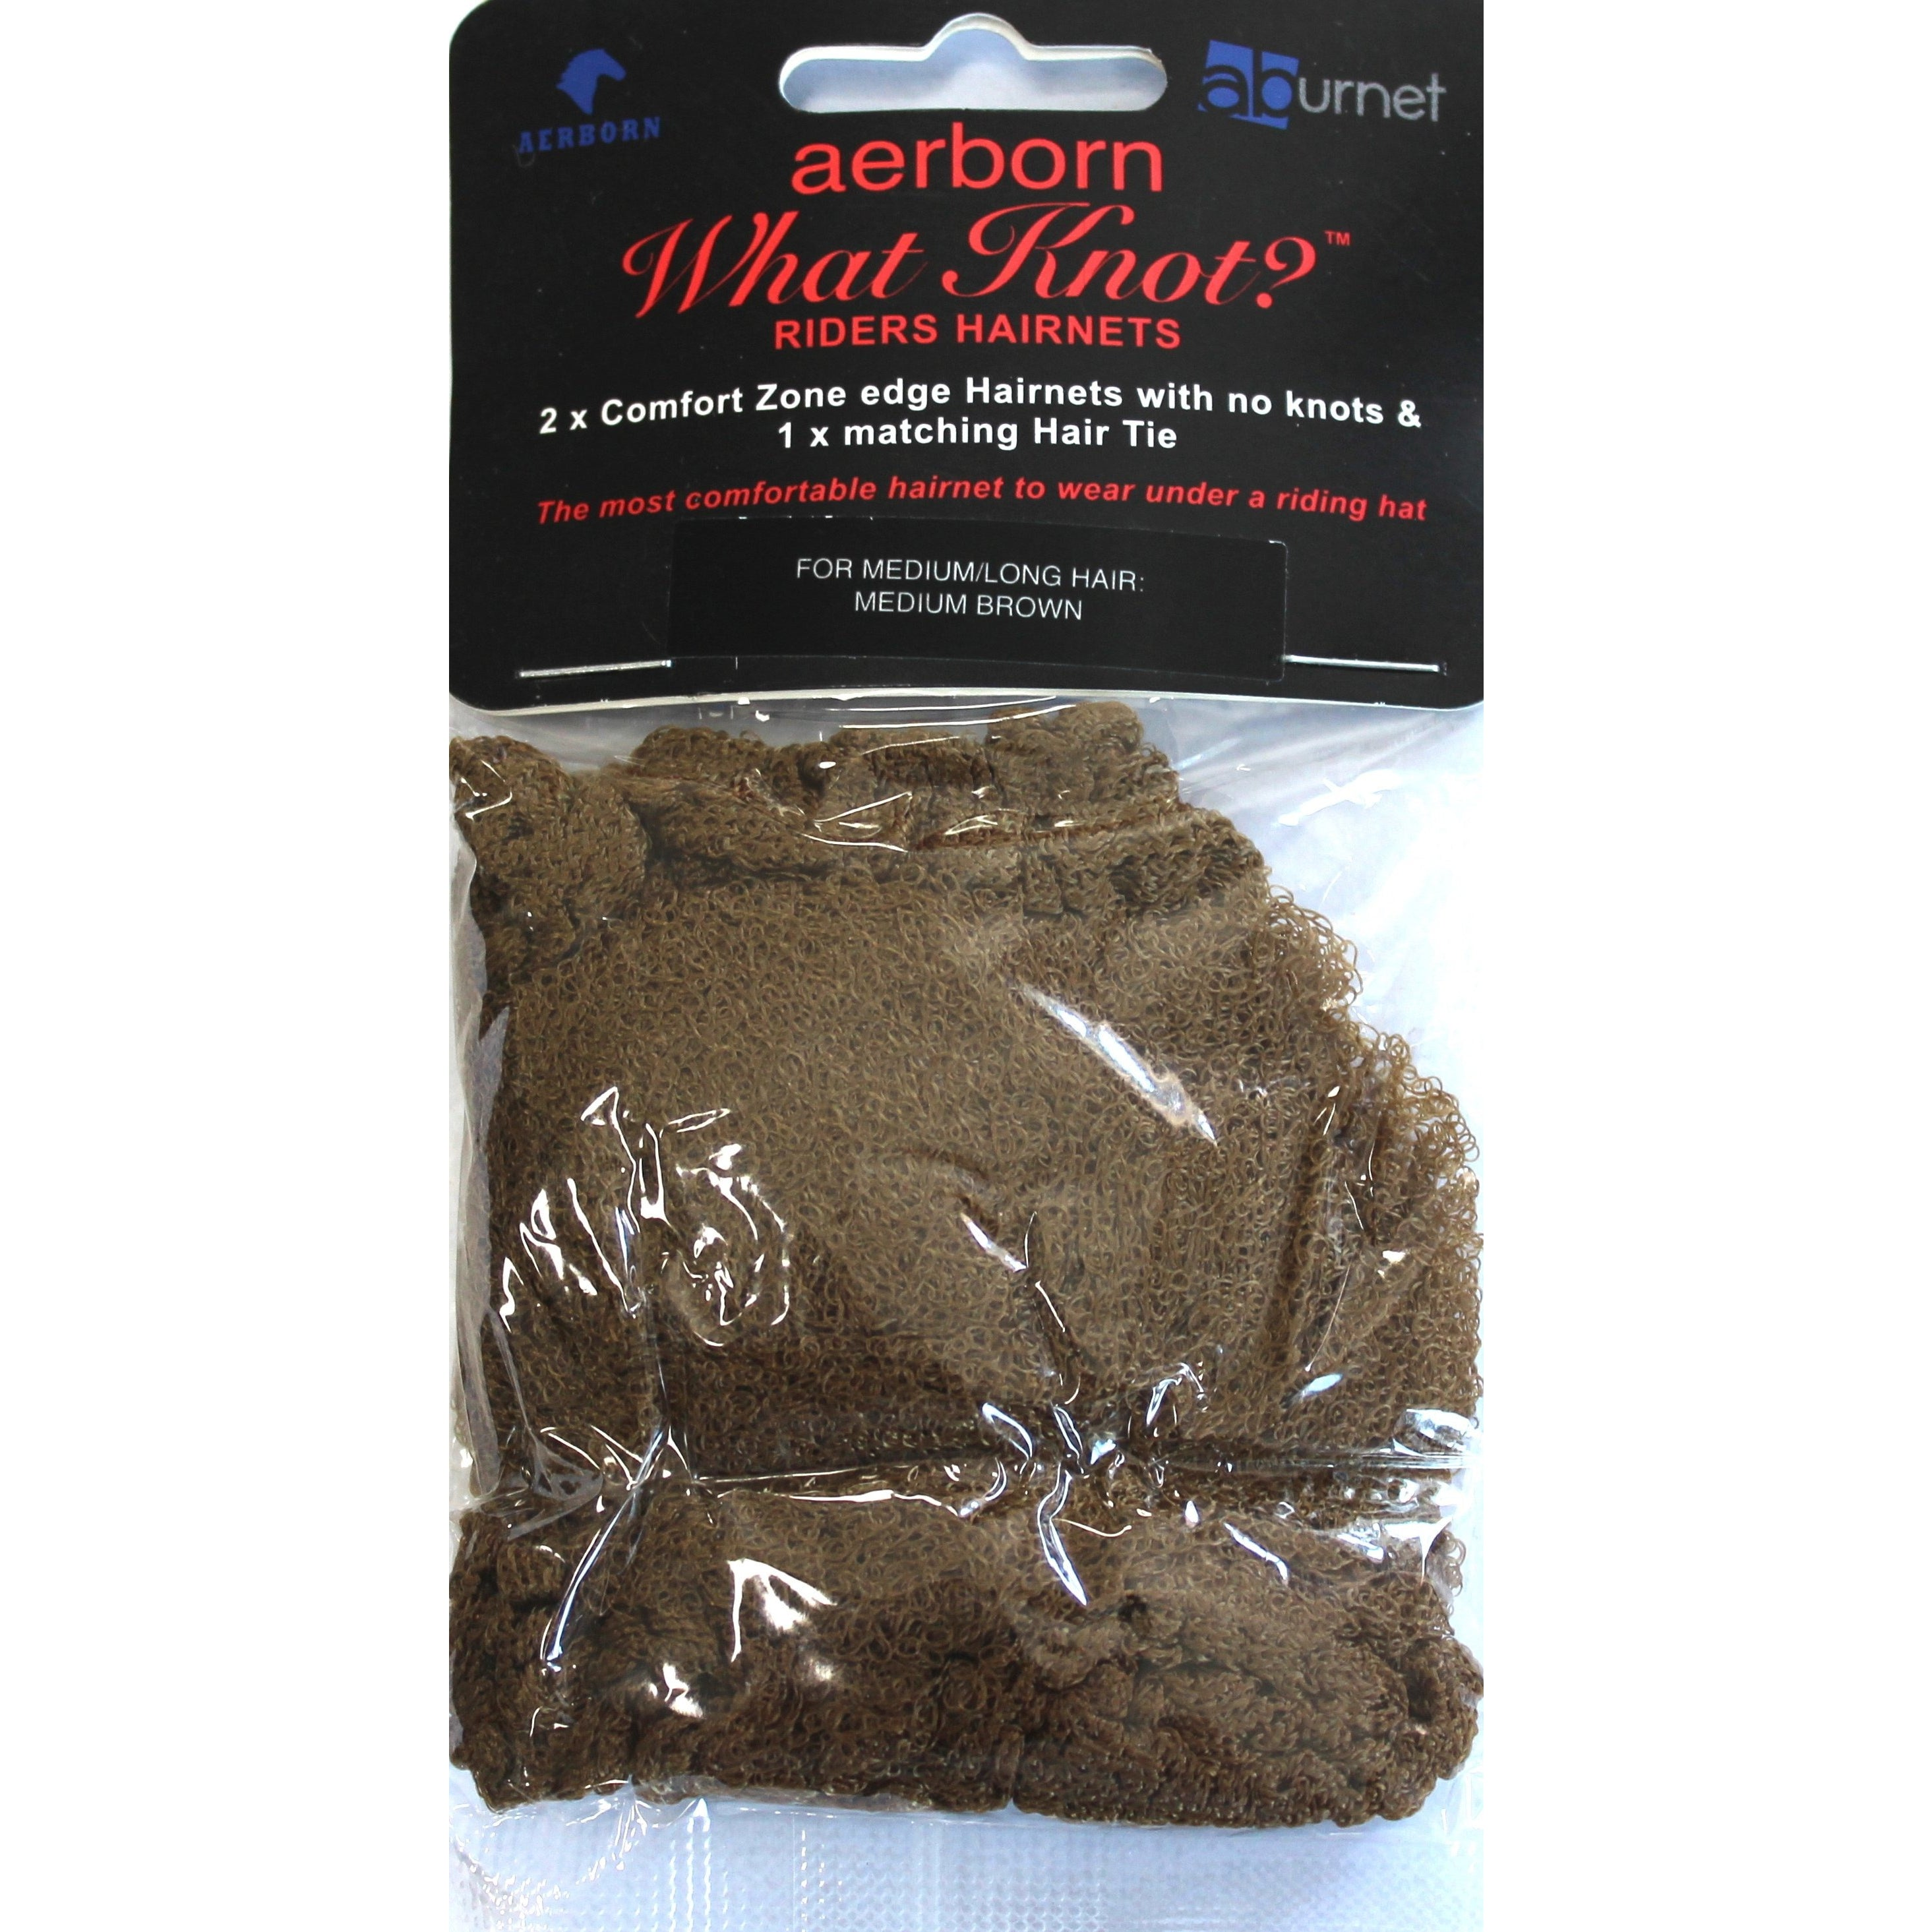 Aerborn What Knot? Hairnets Short Hair - Twin Pack